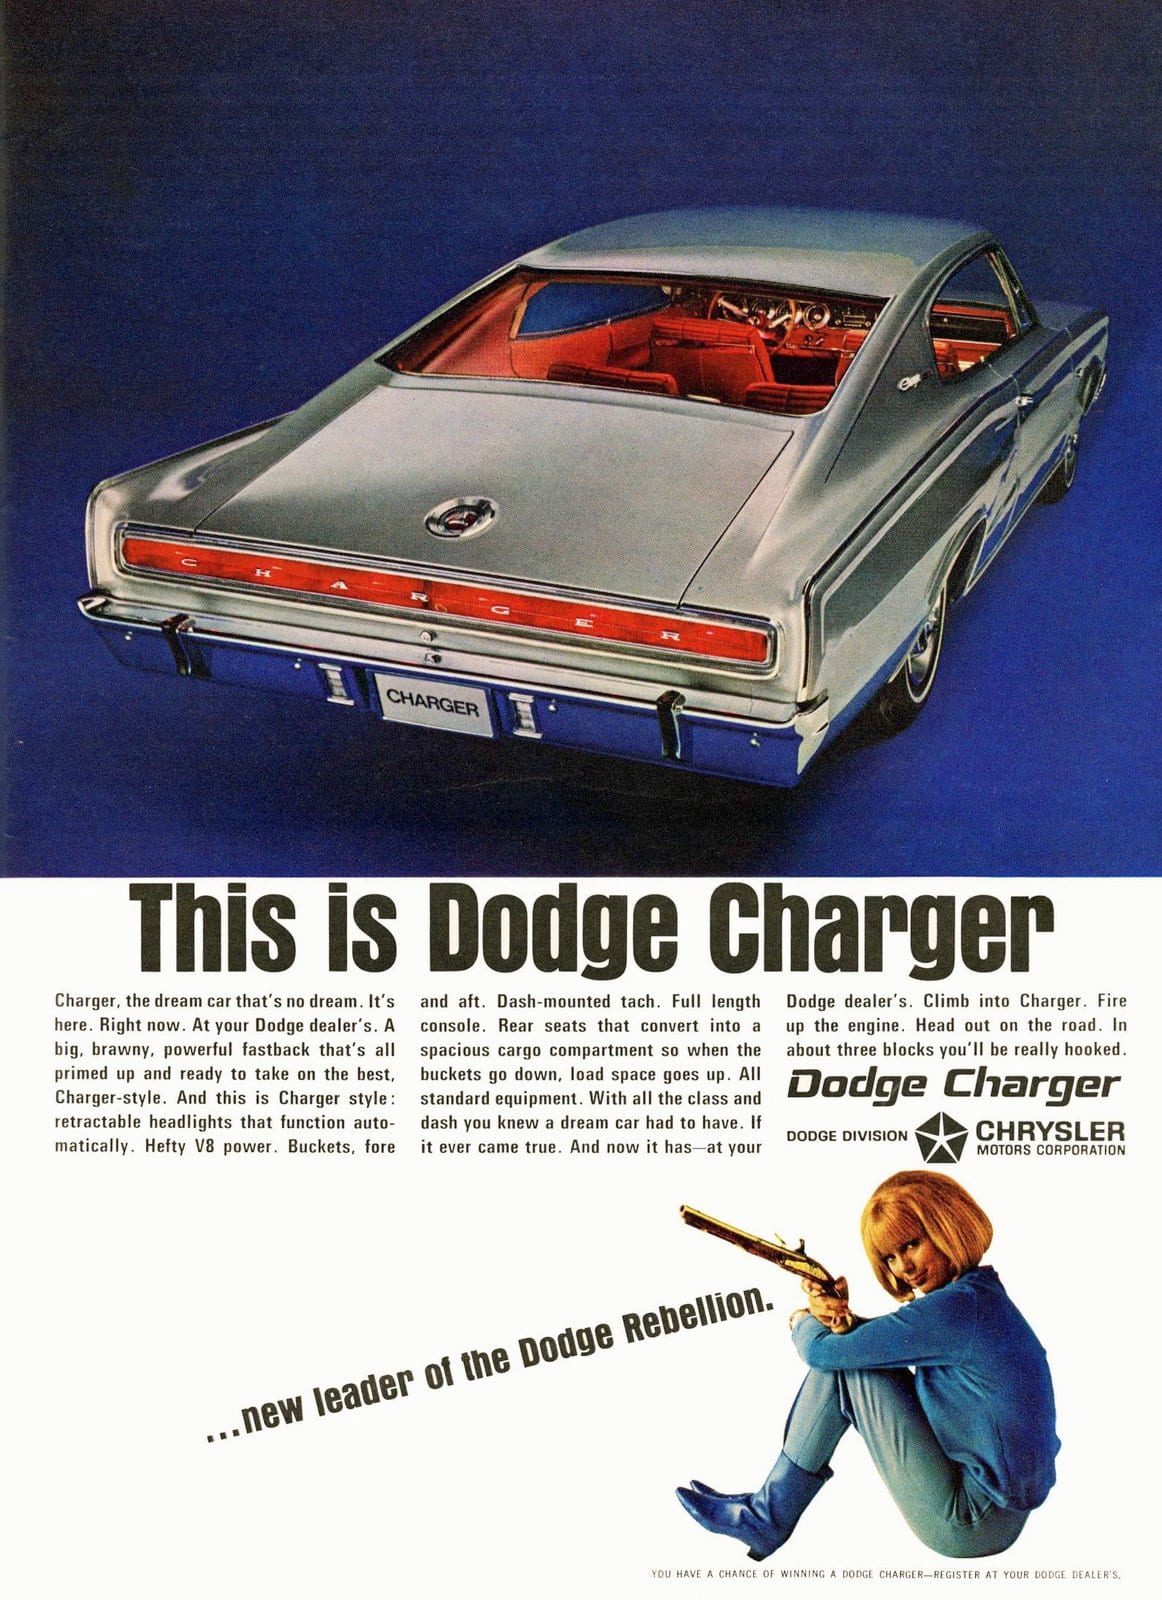 1966 Dodge Charger car